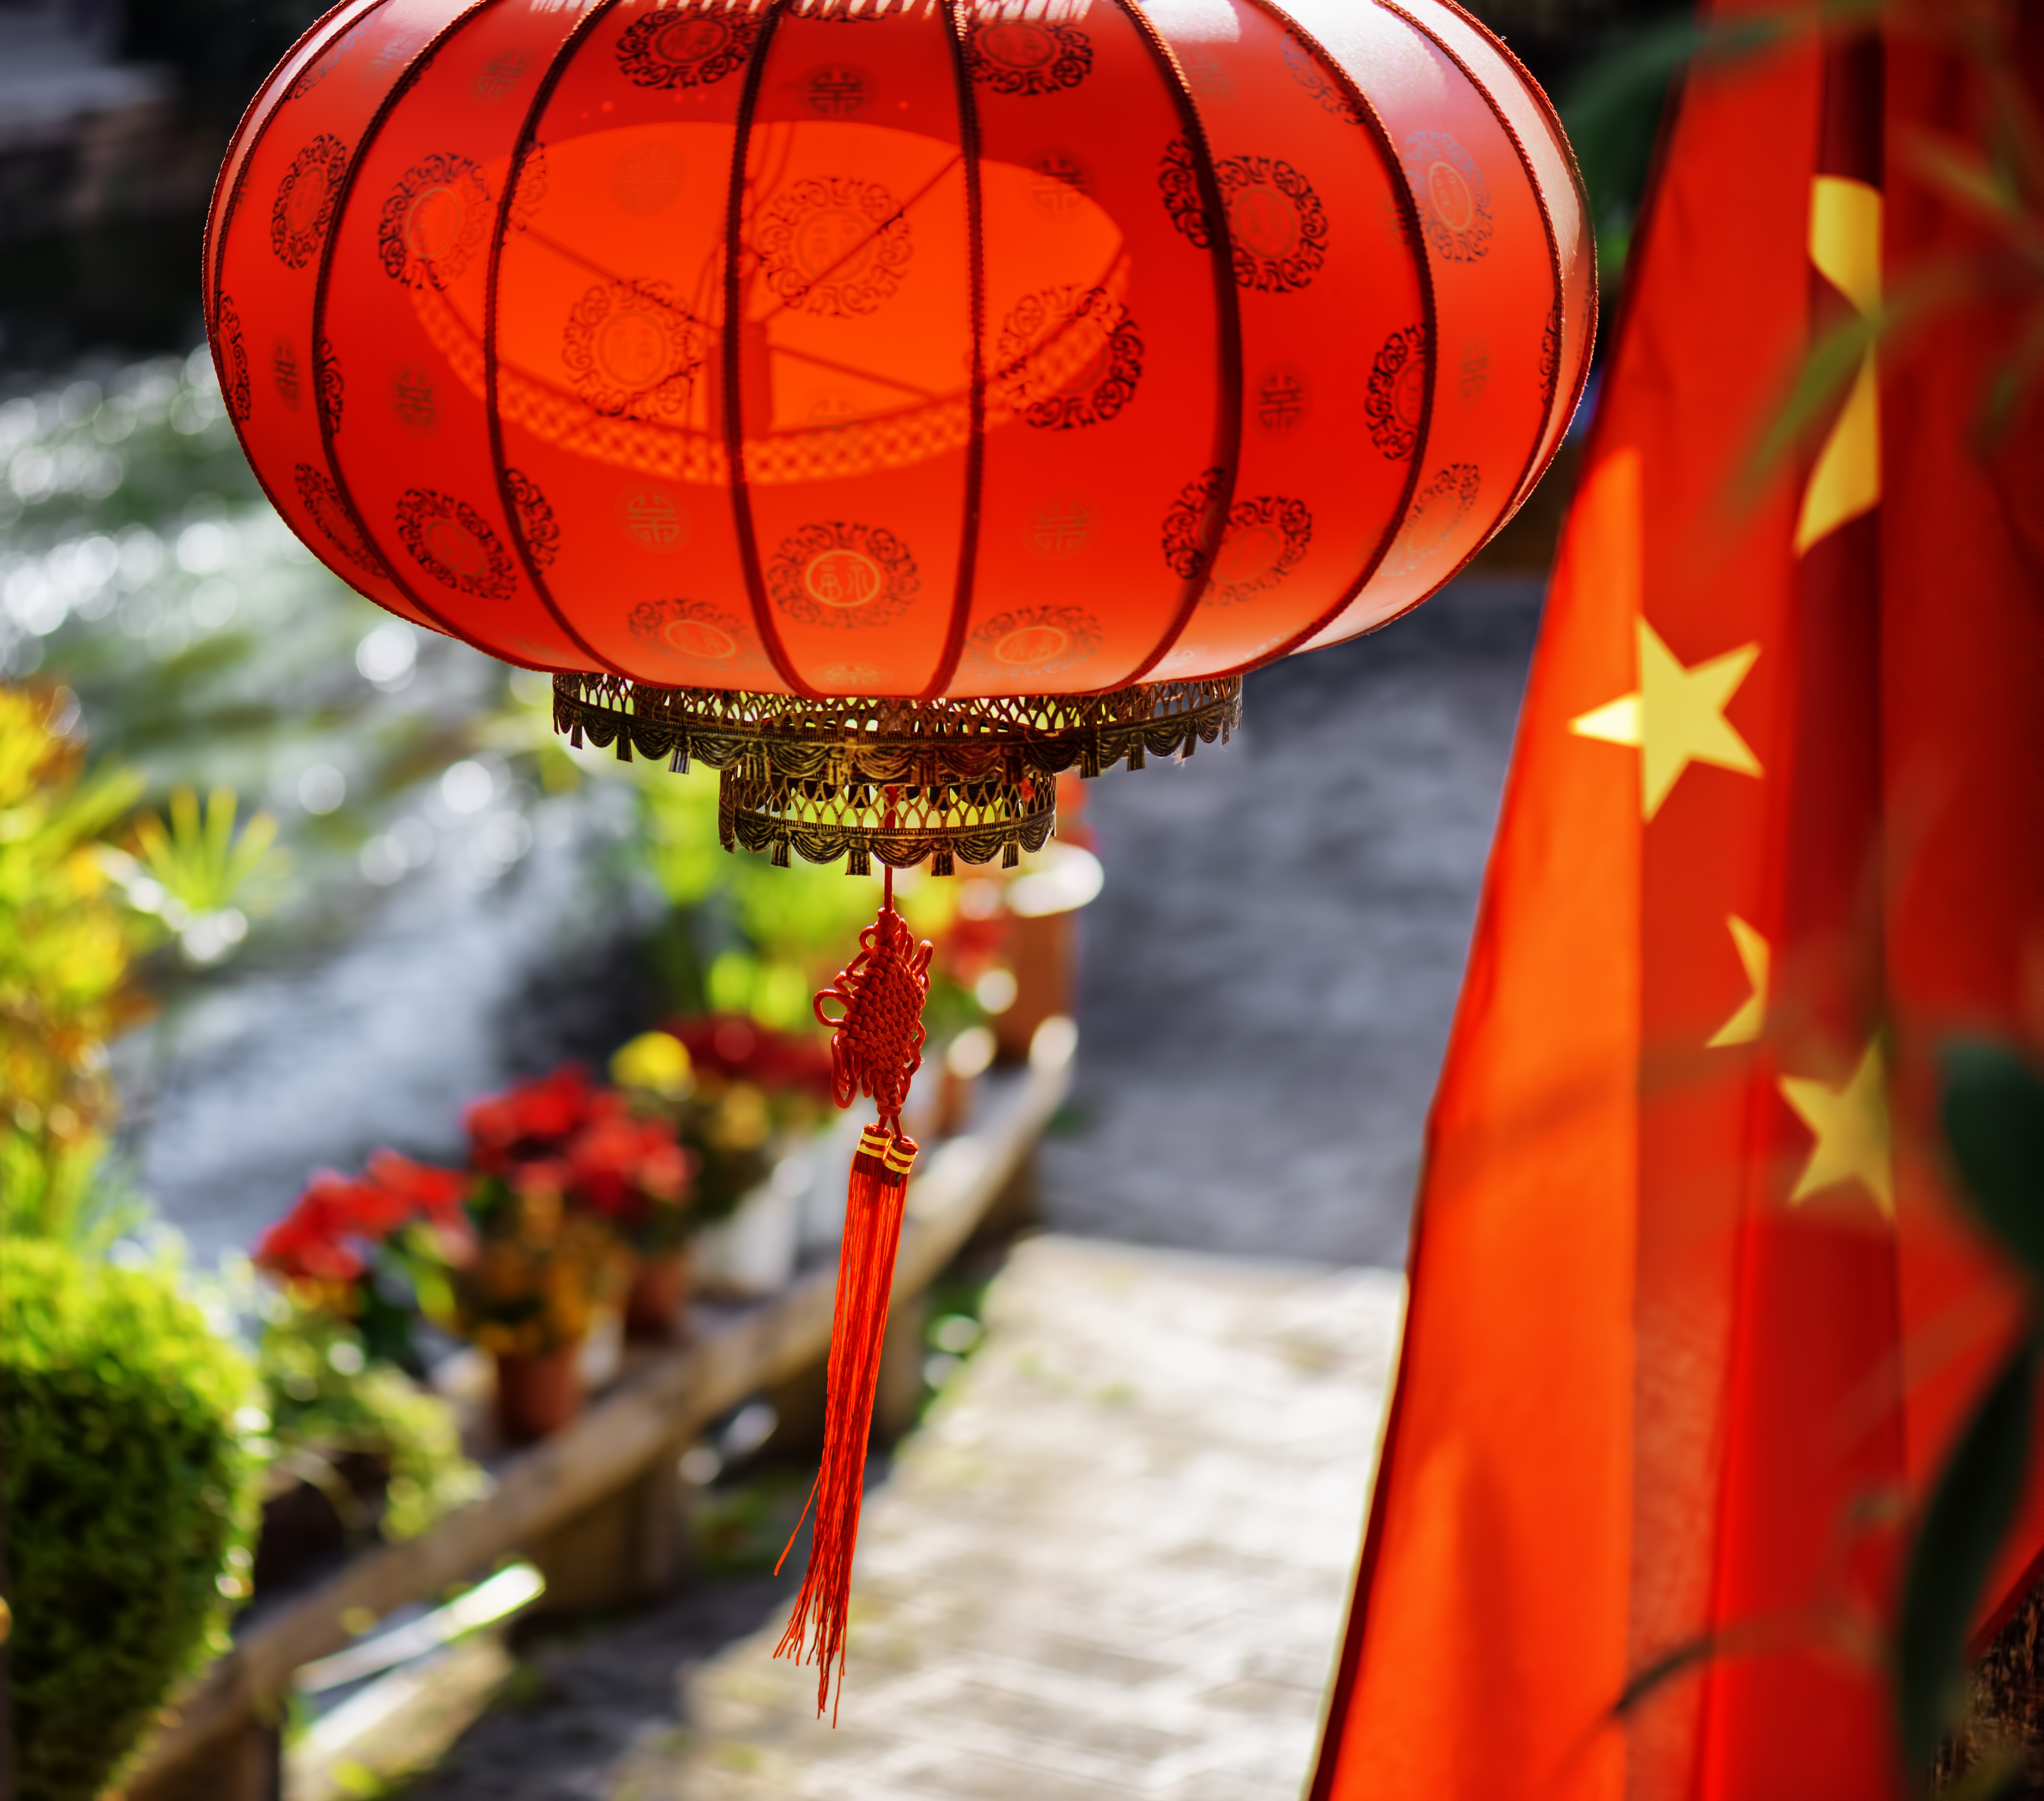 636850566705983648The-national-flag-of-China-and-traditional-Chinese-red-lantern-686614436_4000x3525.jpeg